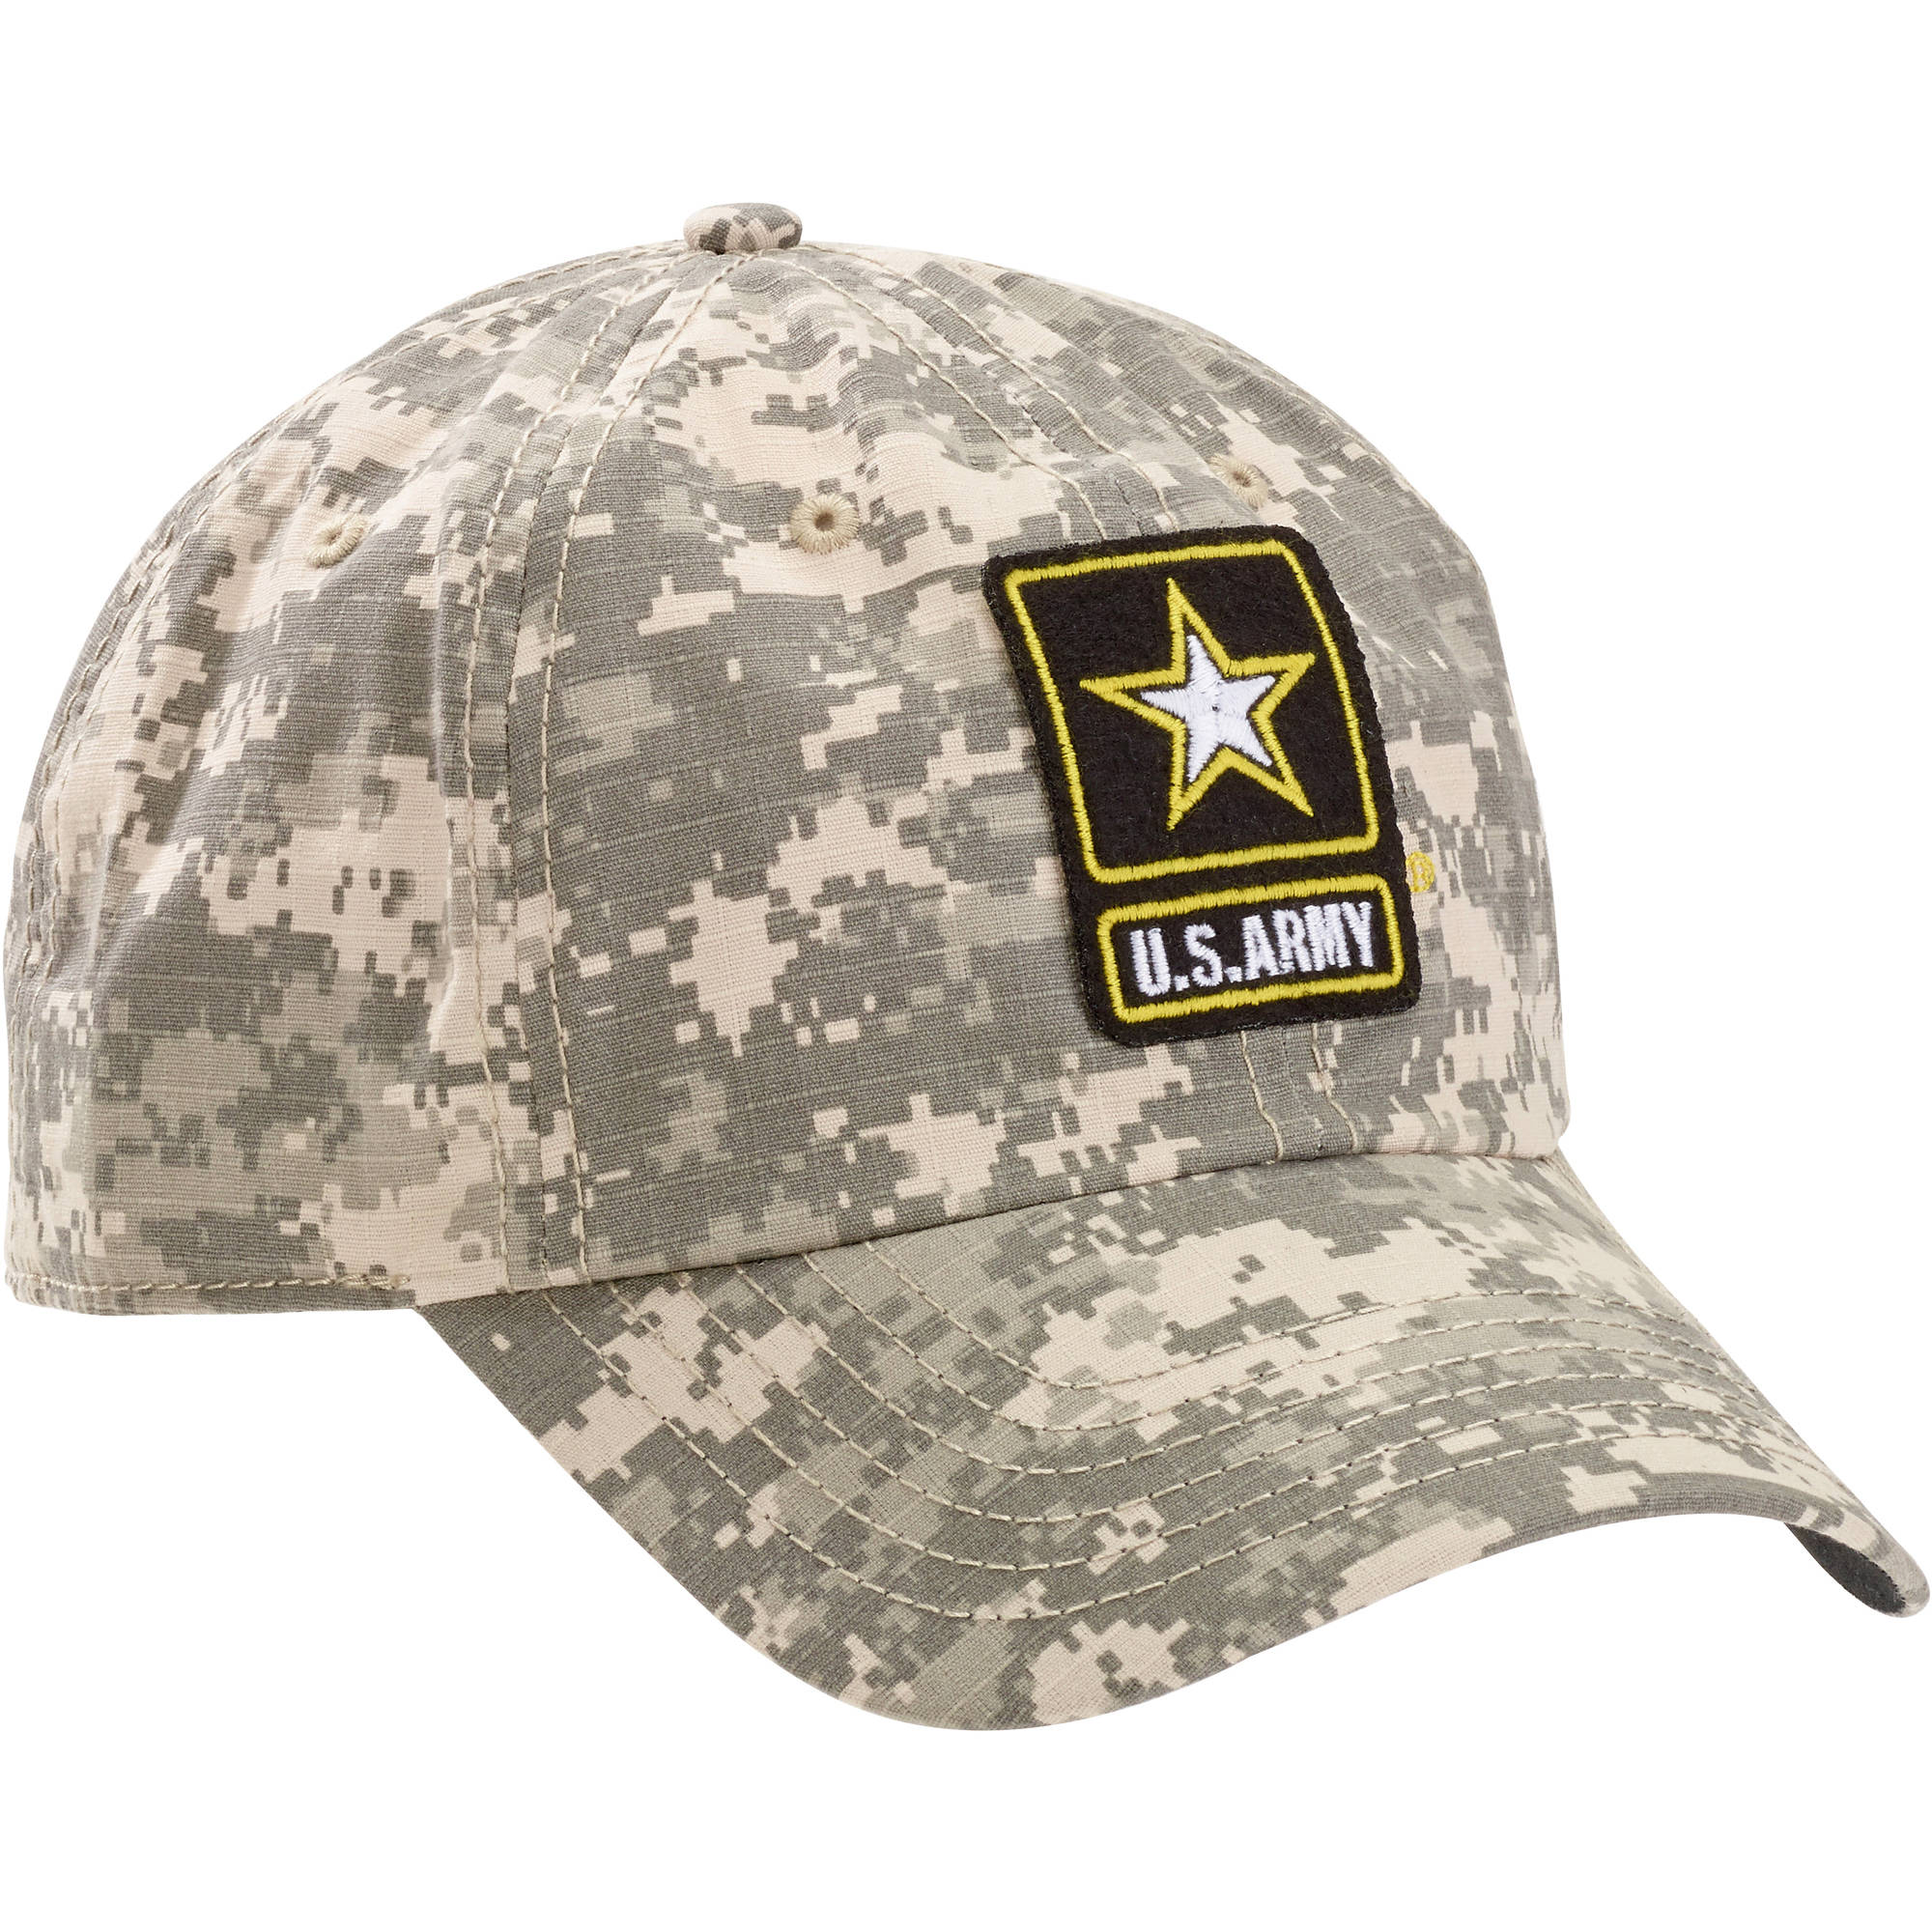 Men's Army Digi Camo Hat